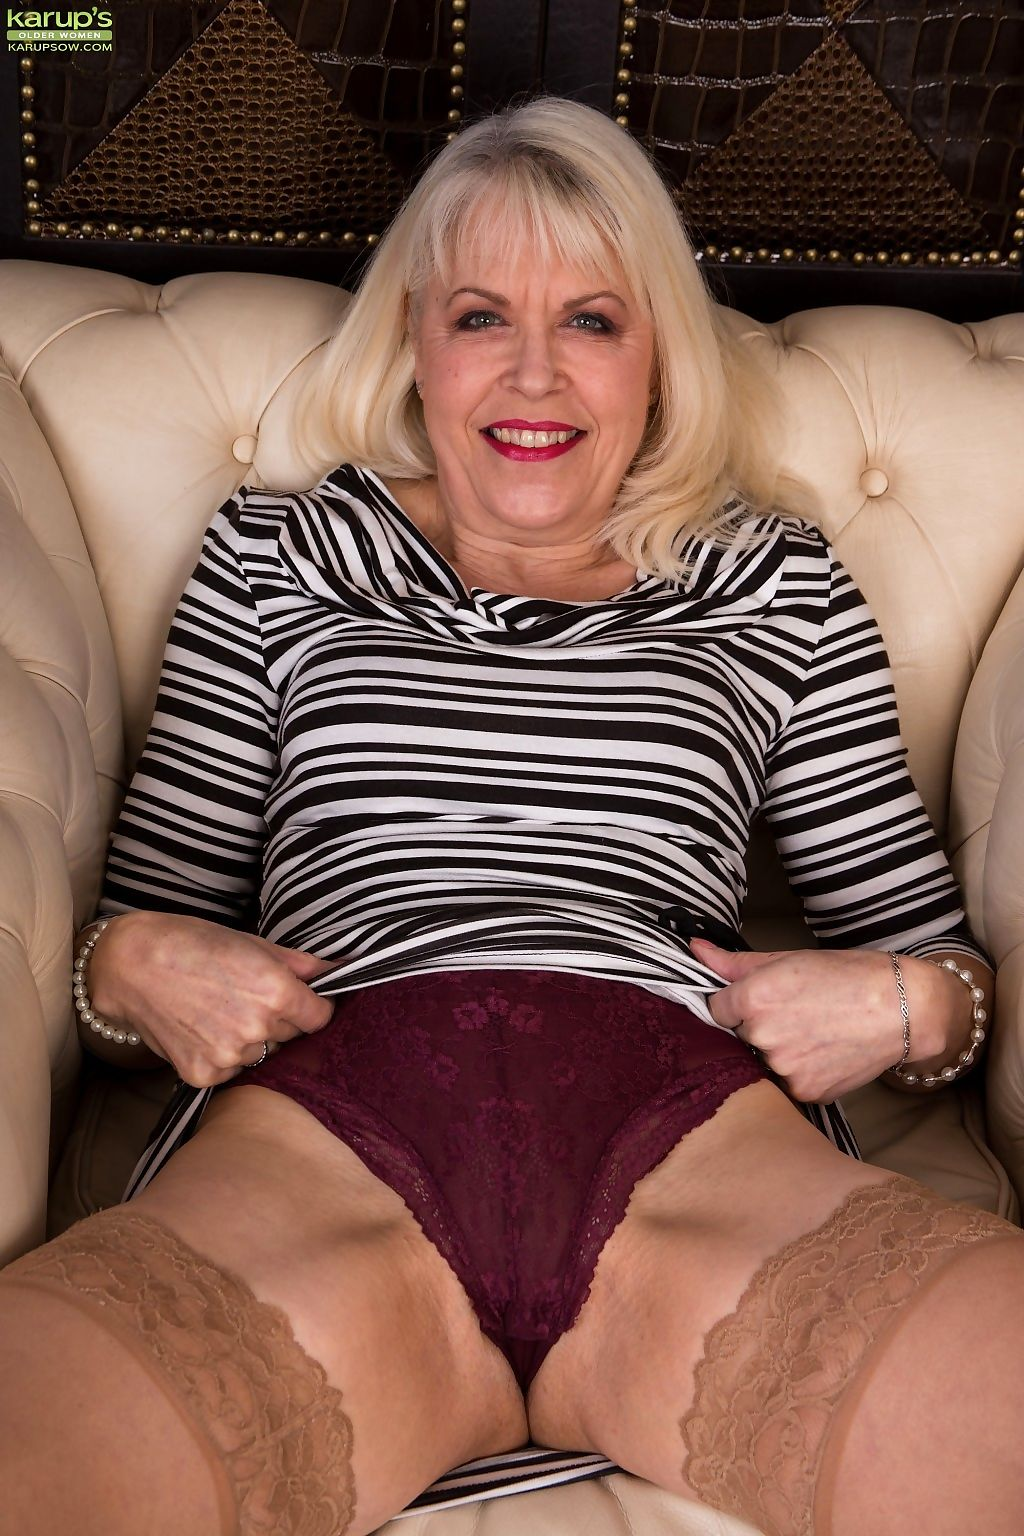 Mature blonde margaret holt spreads wide on a chesterfield chair - part 9